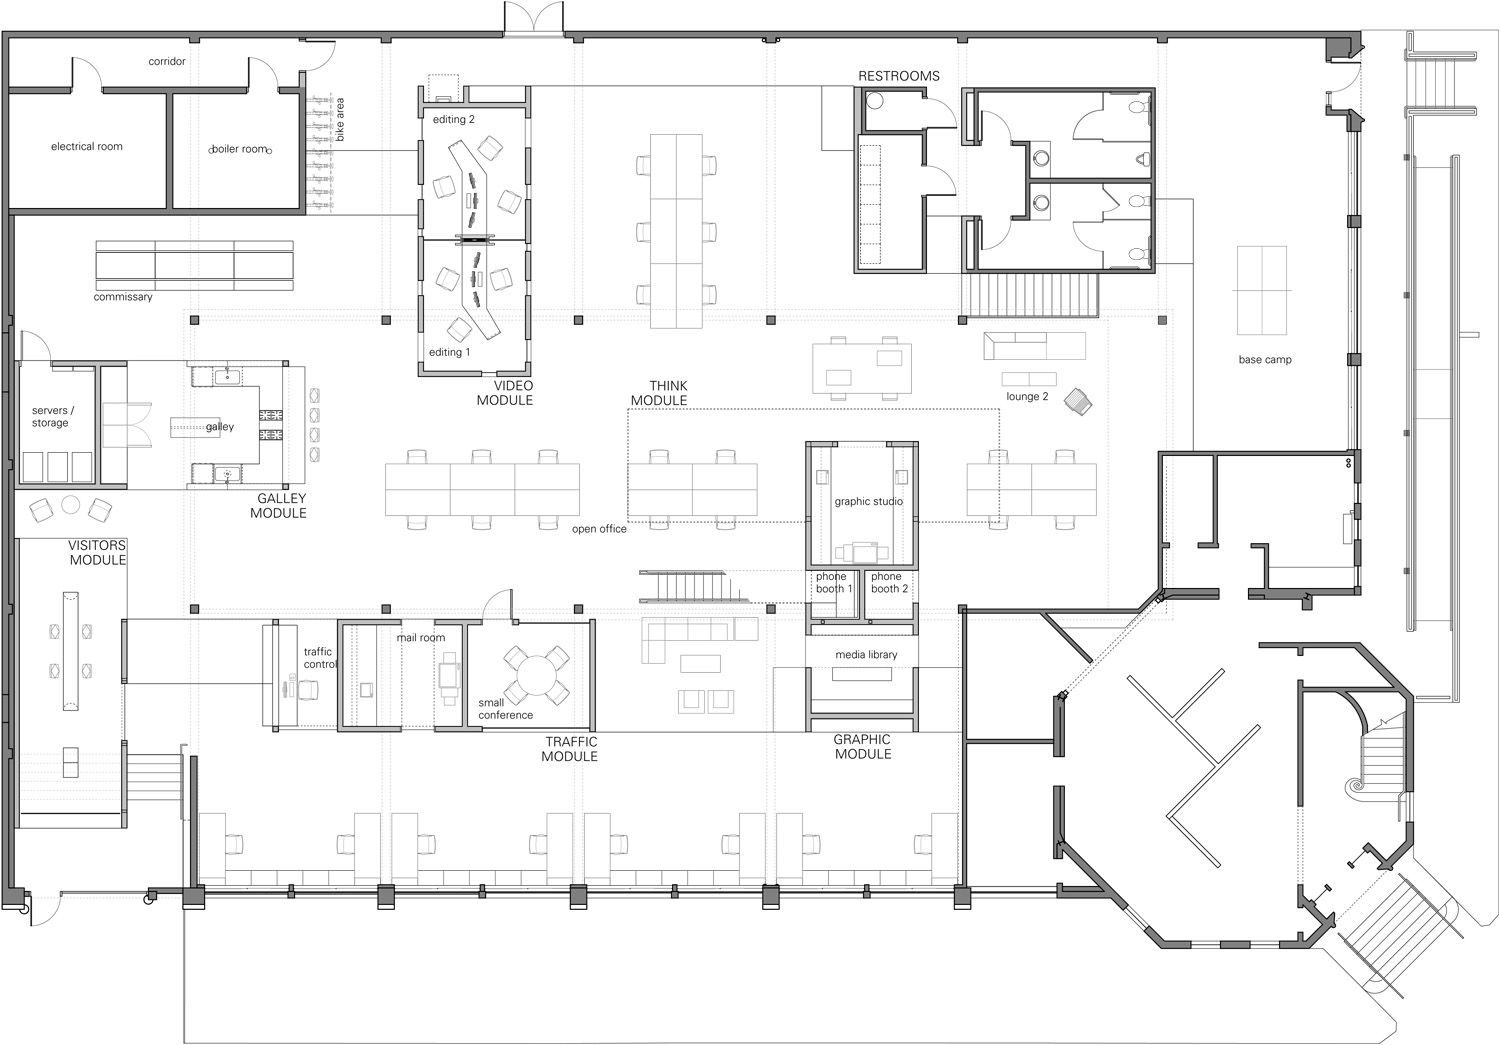 North skylab architecture office floor plan office for Architectural design plans